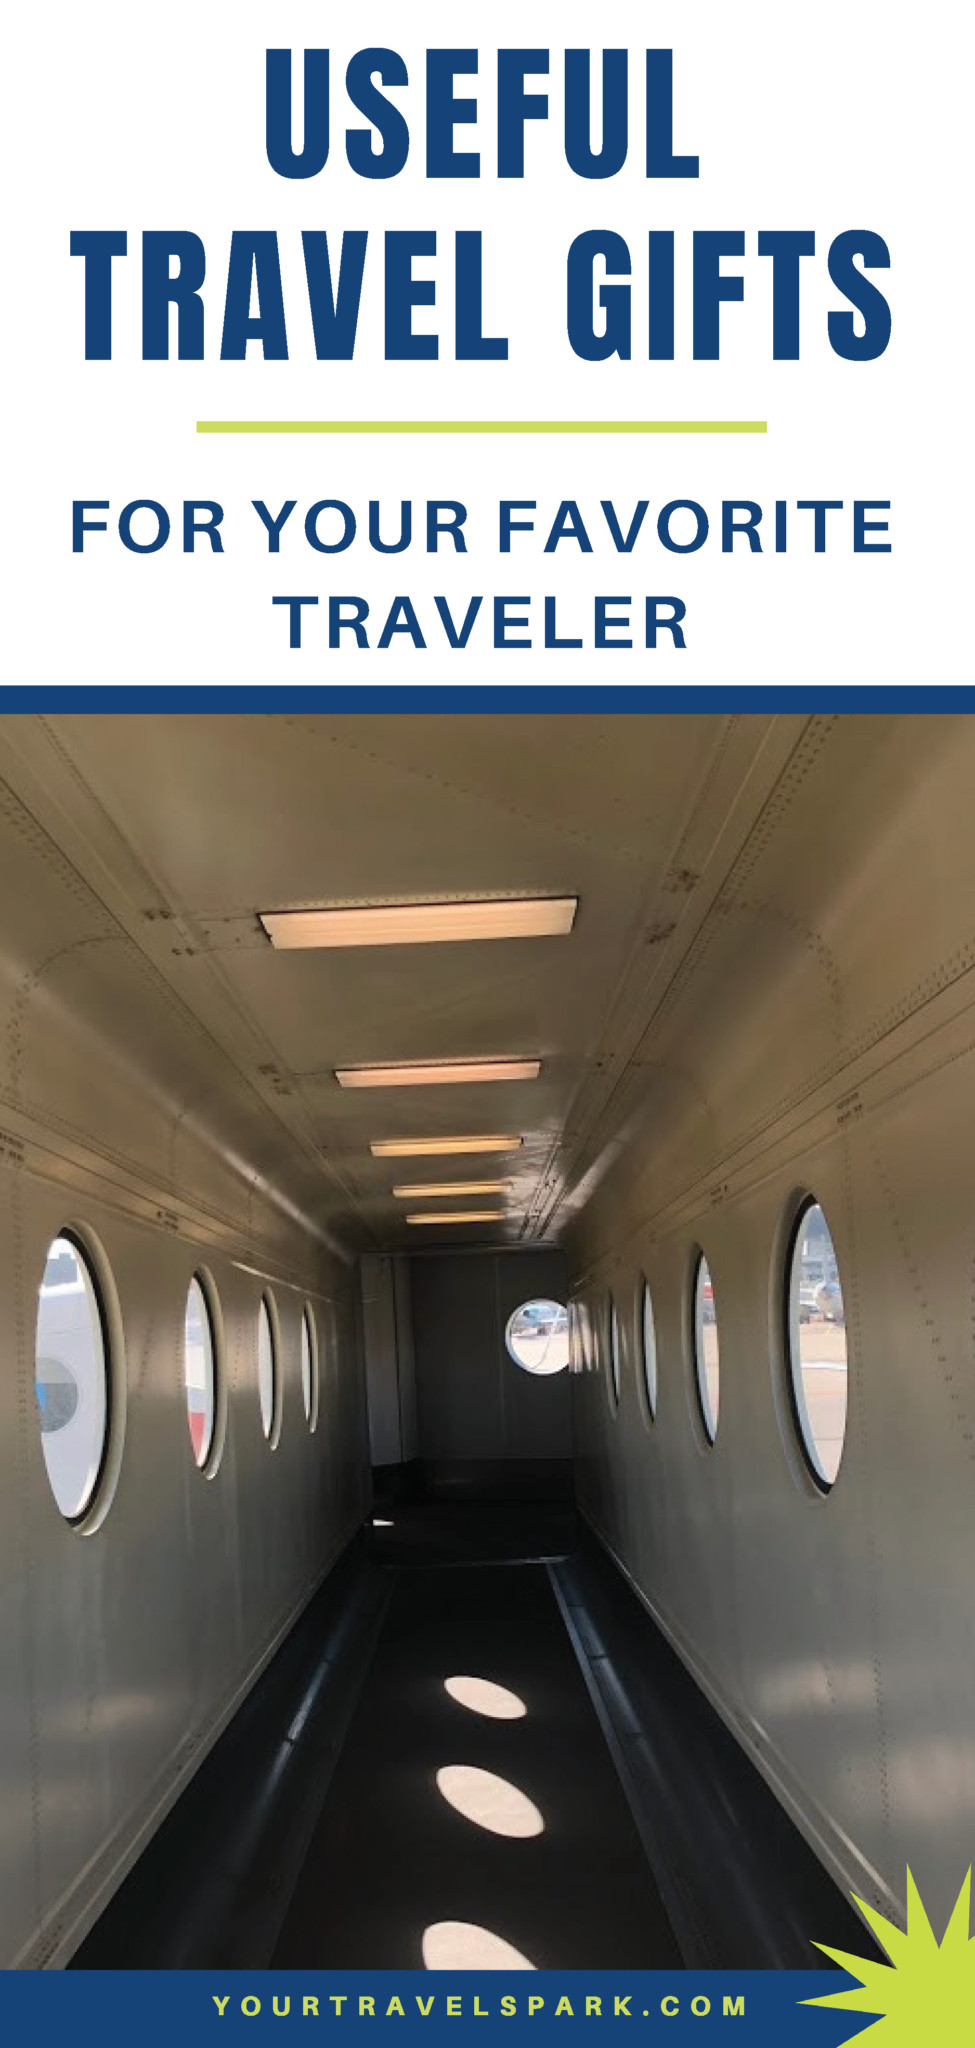 Looking for a travel gift for the traveler in your life (or yourself) - here are our favorite useful travel gifts. #travelgift #travelgifts #uniquetravelgifts #buyingguide #giftsfortravelers #usefultravelgifts